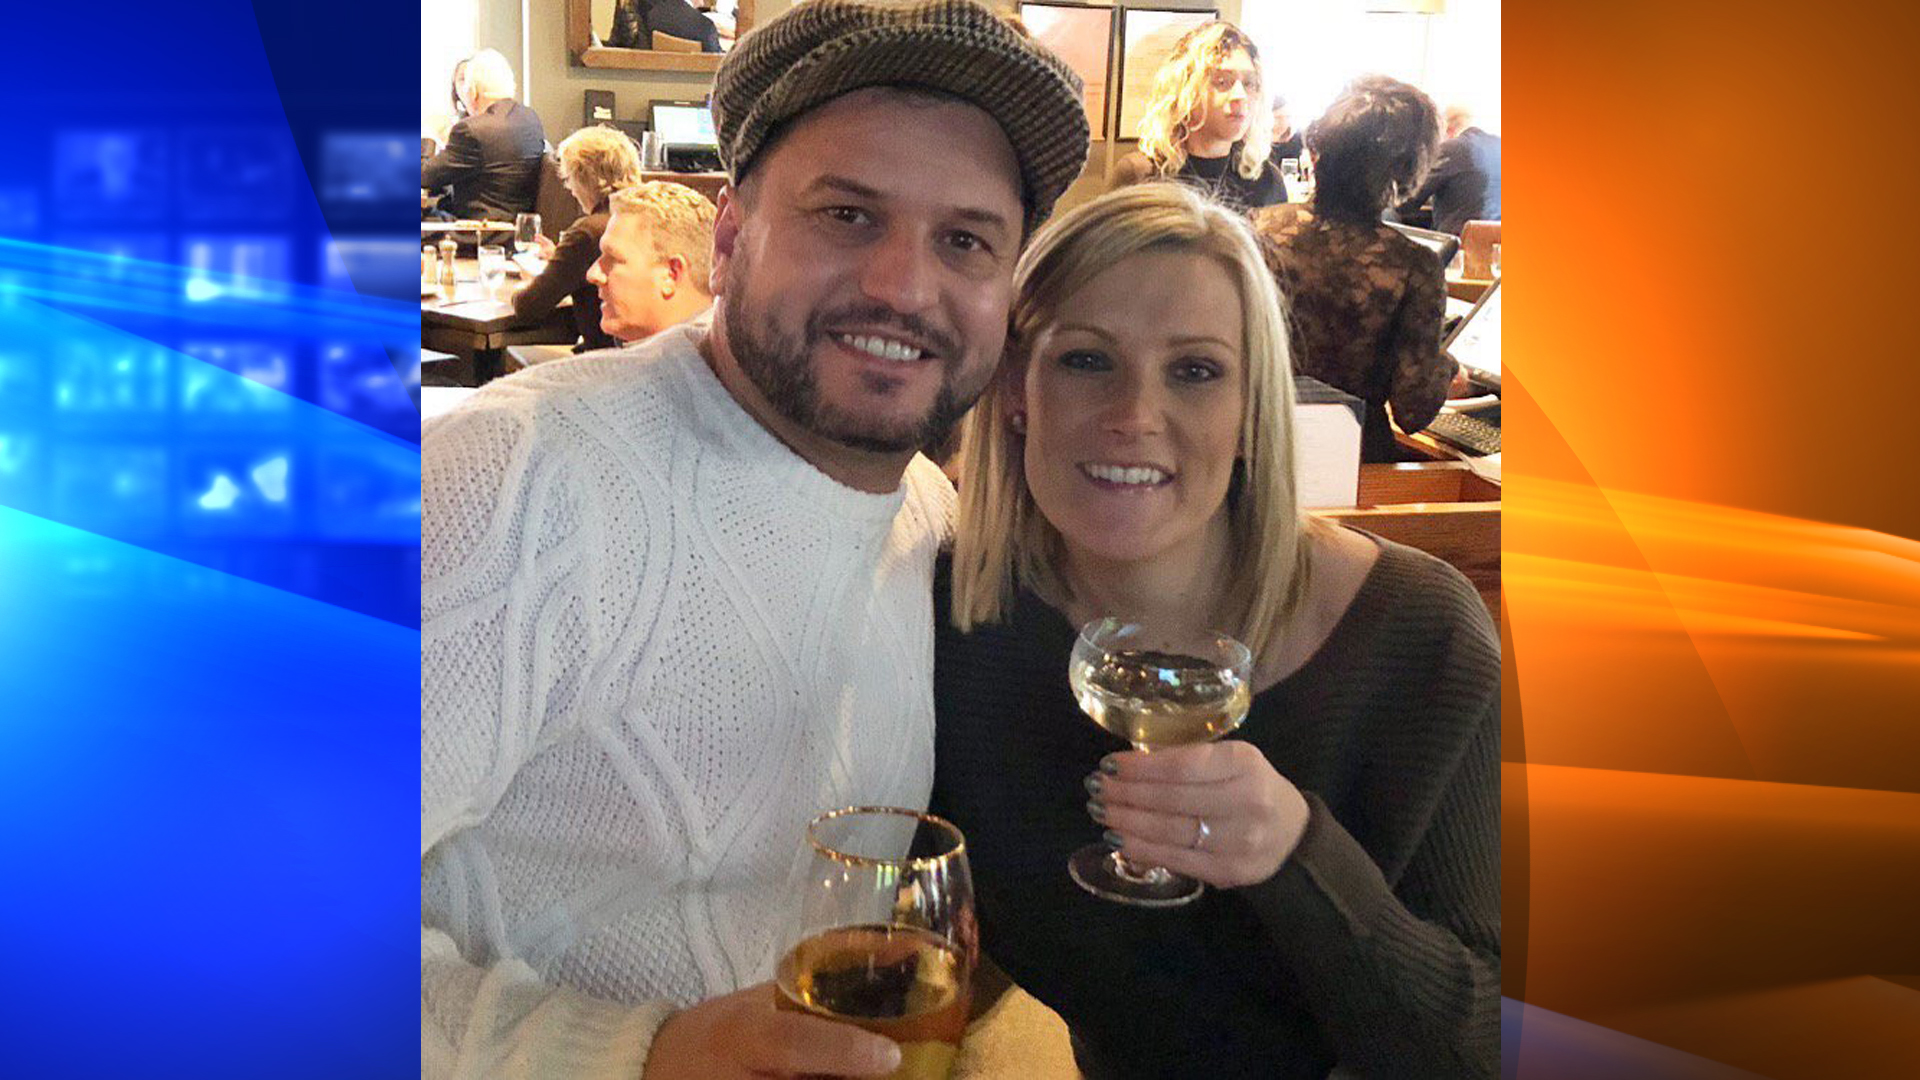 A couple, identified by the New York Police Department as John and Daniella, were reunited with their engagement ring with the help of police and social media on Dec. 2018. (Credit: NYPD)